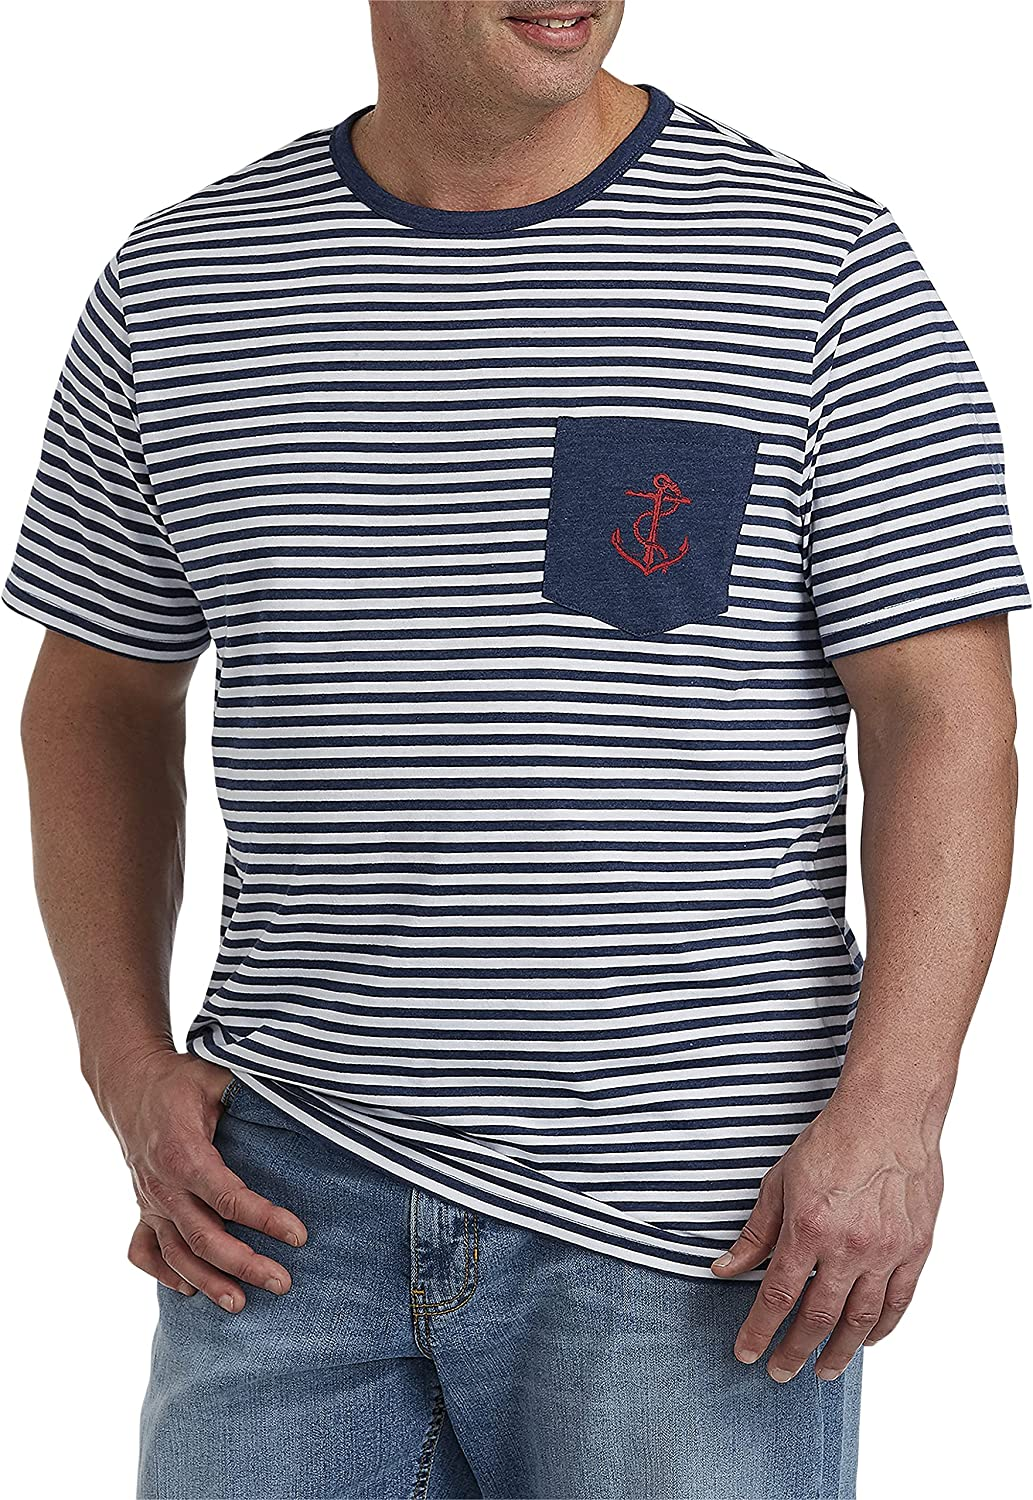 Harbor Bay by DXL Big and Tall Anchor Stripe Pocket Tee, Blue Multi